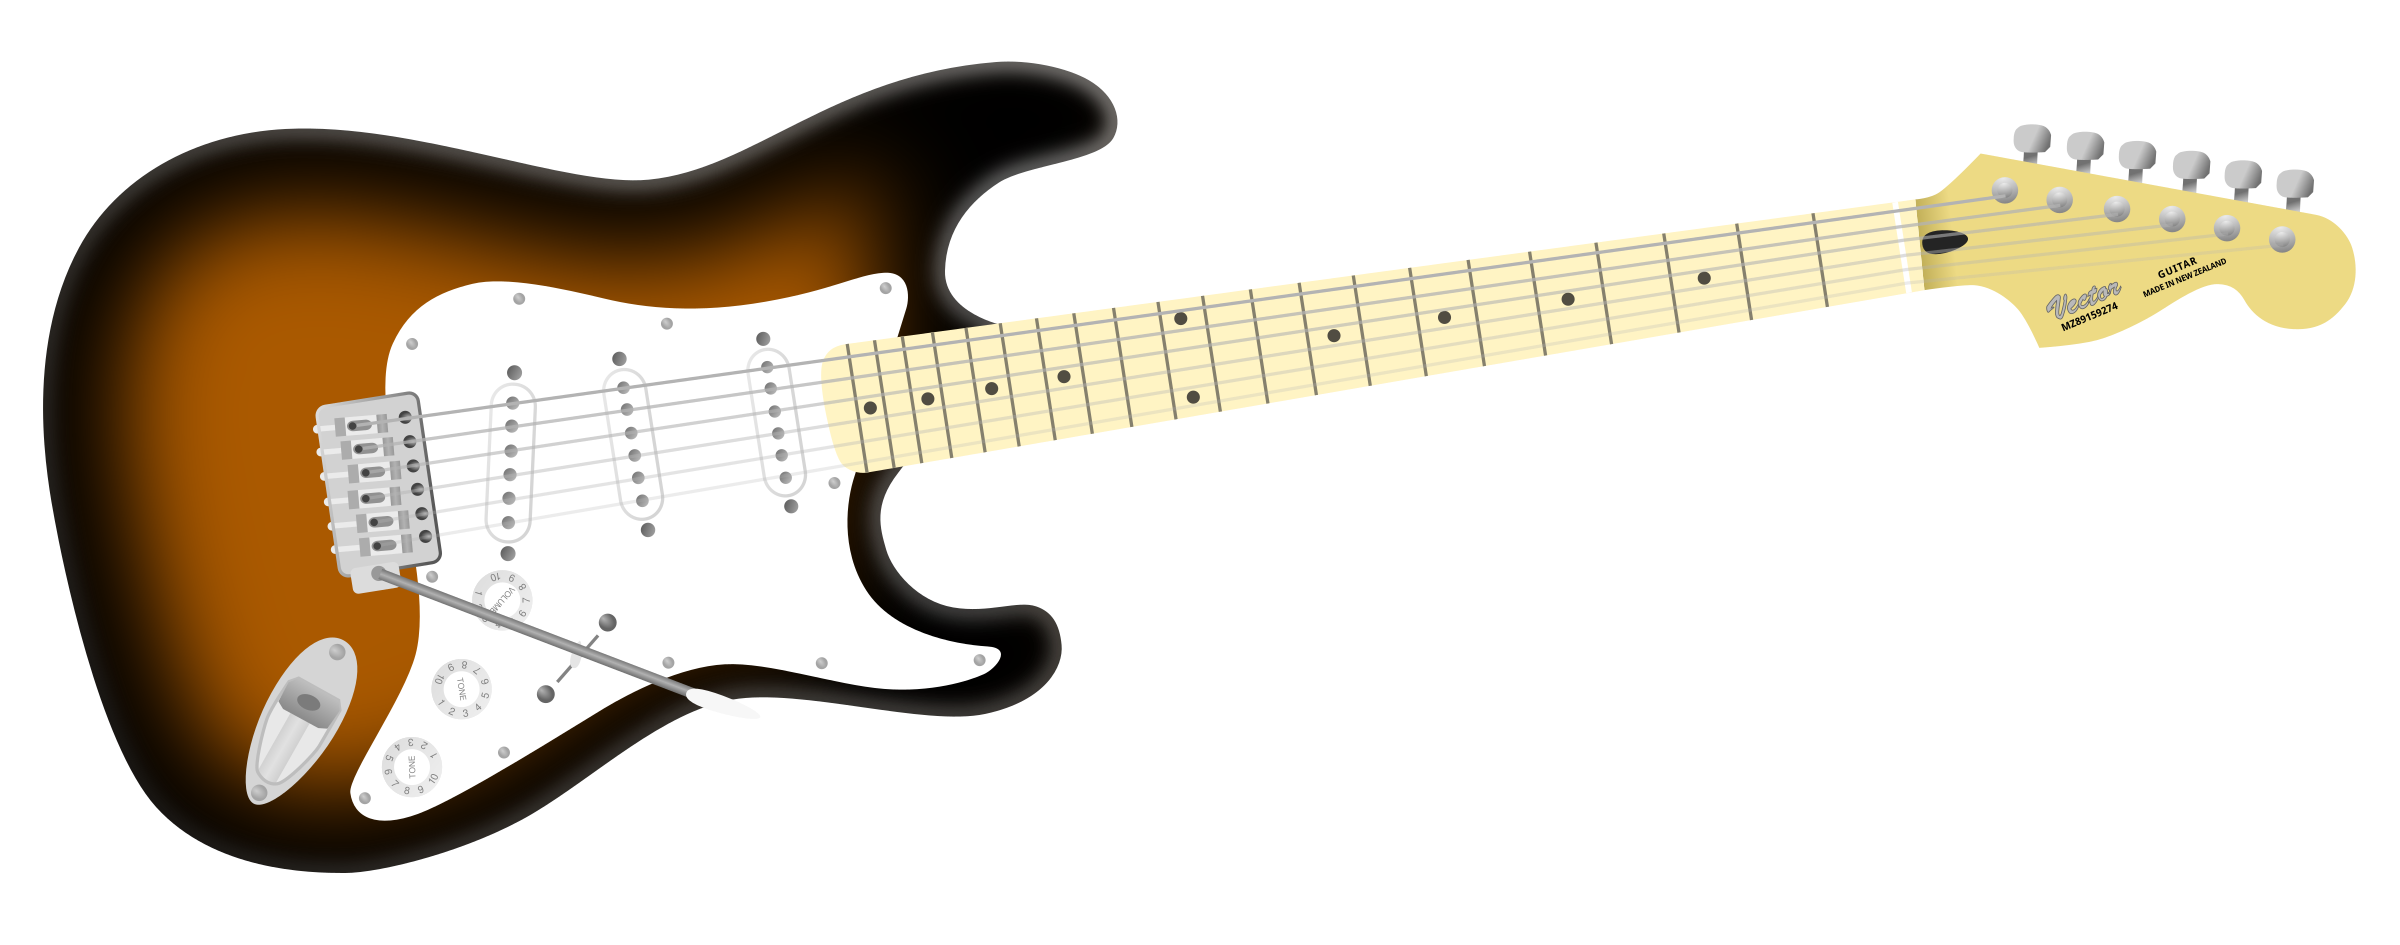 Electric guitar by Tomas Sobek